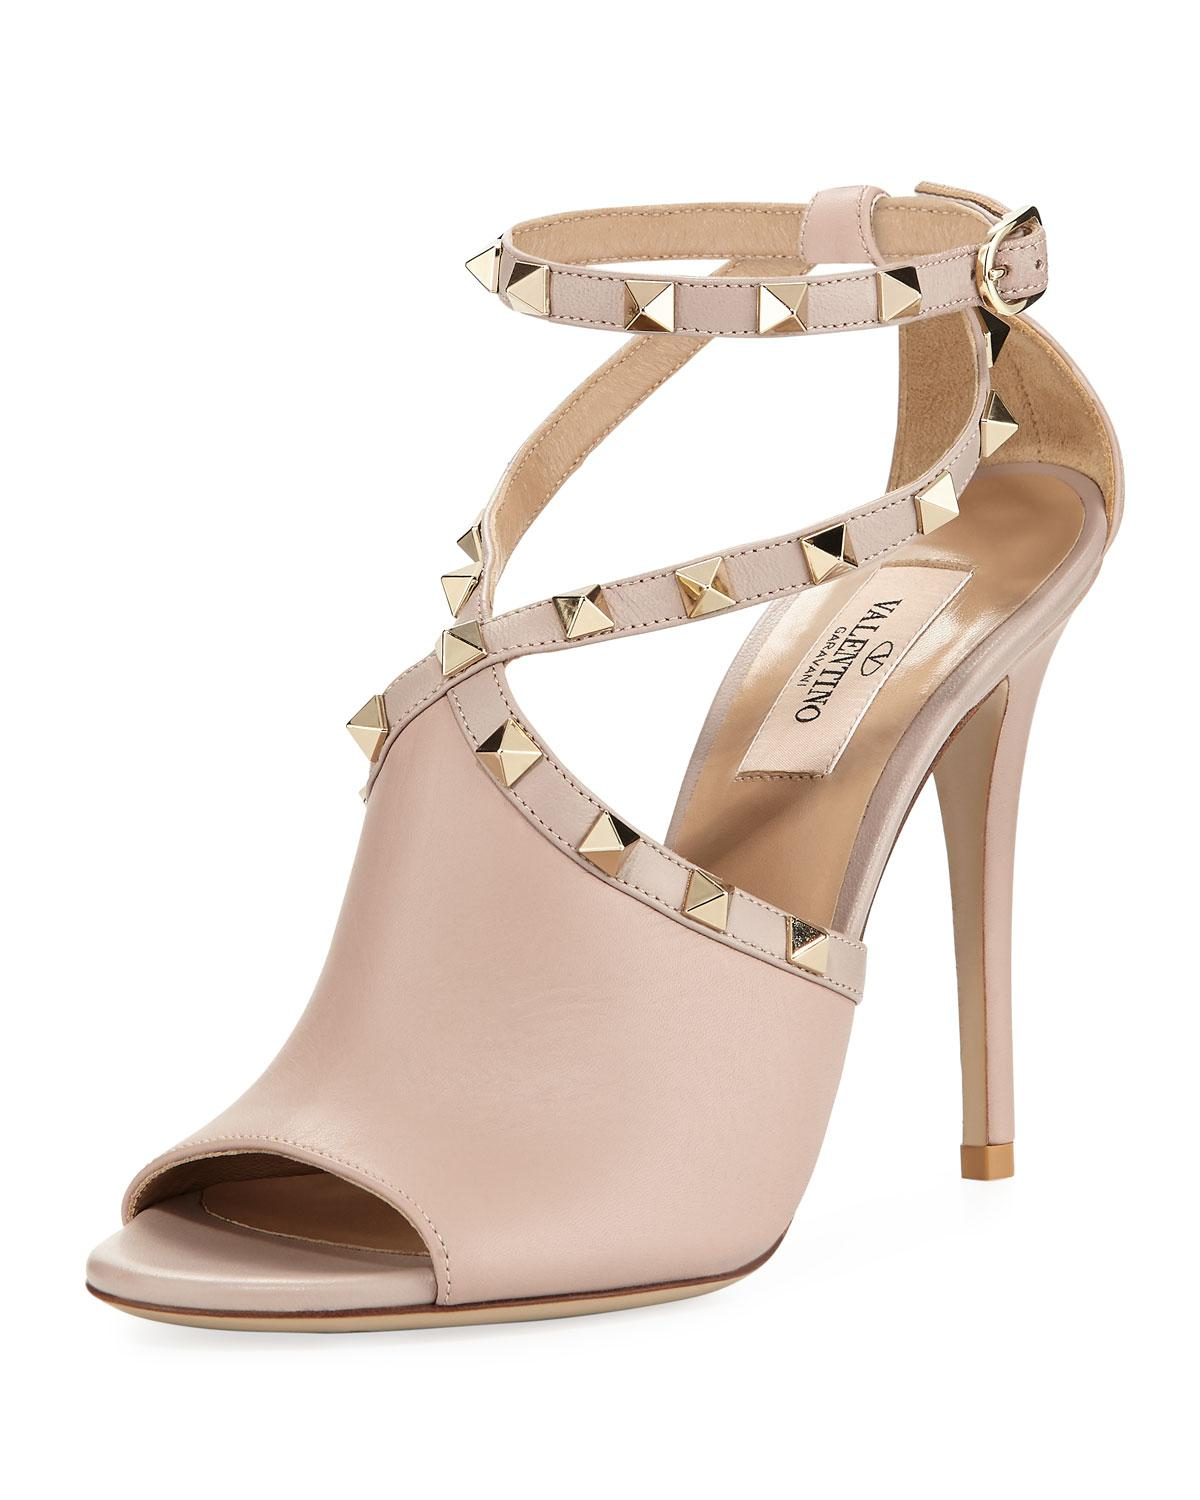 2a66e39587e0 Lyst - Valentino Leather Rockstud Ankle-wrap Sandal in Natural